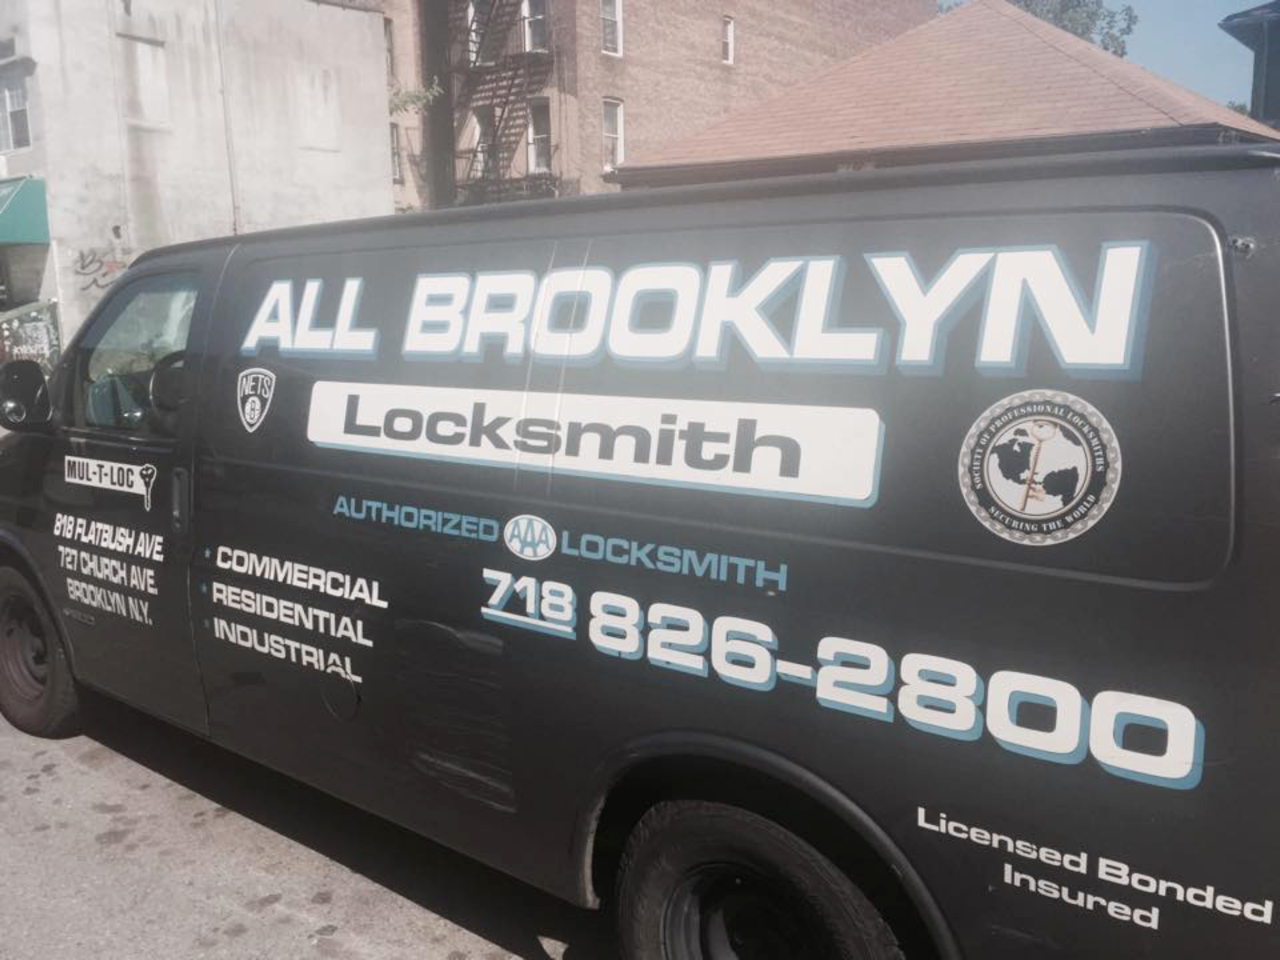 Aaa Authorized 247 Locksmith  All Brooklyn Locksmith. Northwestern College Of Nursing. Best Immigration Lawyers In Houston. Best Free Classified Websites. Ecommerce Website Design New York. Compare Two Cell Phones Ohio Mortgage Lenders. Reverse Complement Generator. Waverley House Hotel London Skye Bank Online. Degree In Guidance Counseling